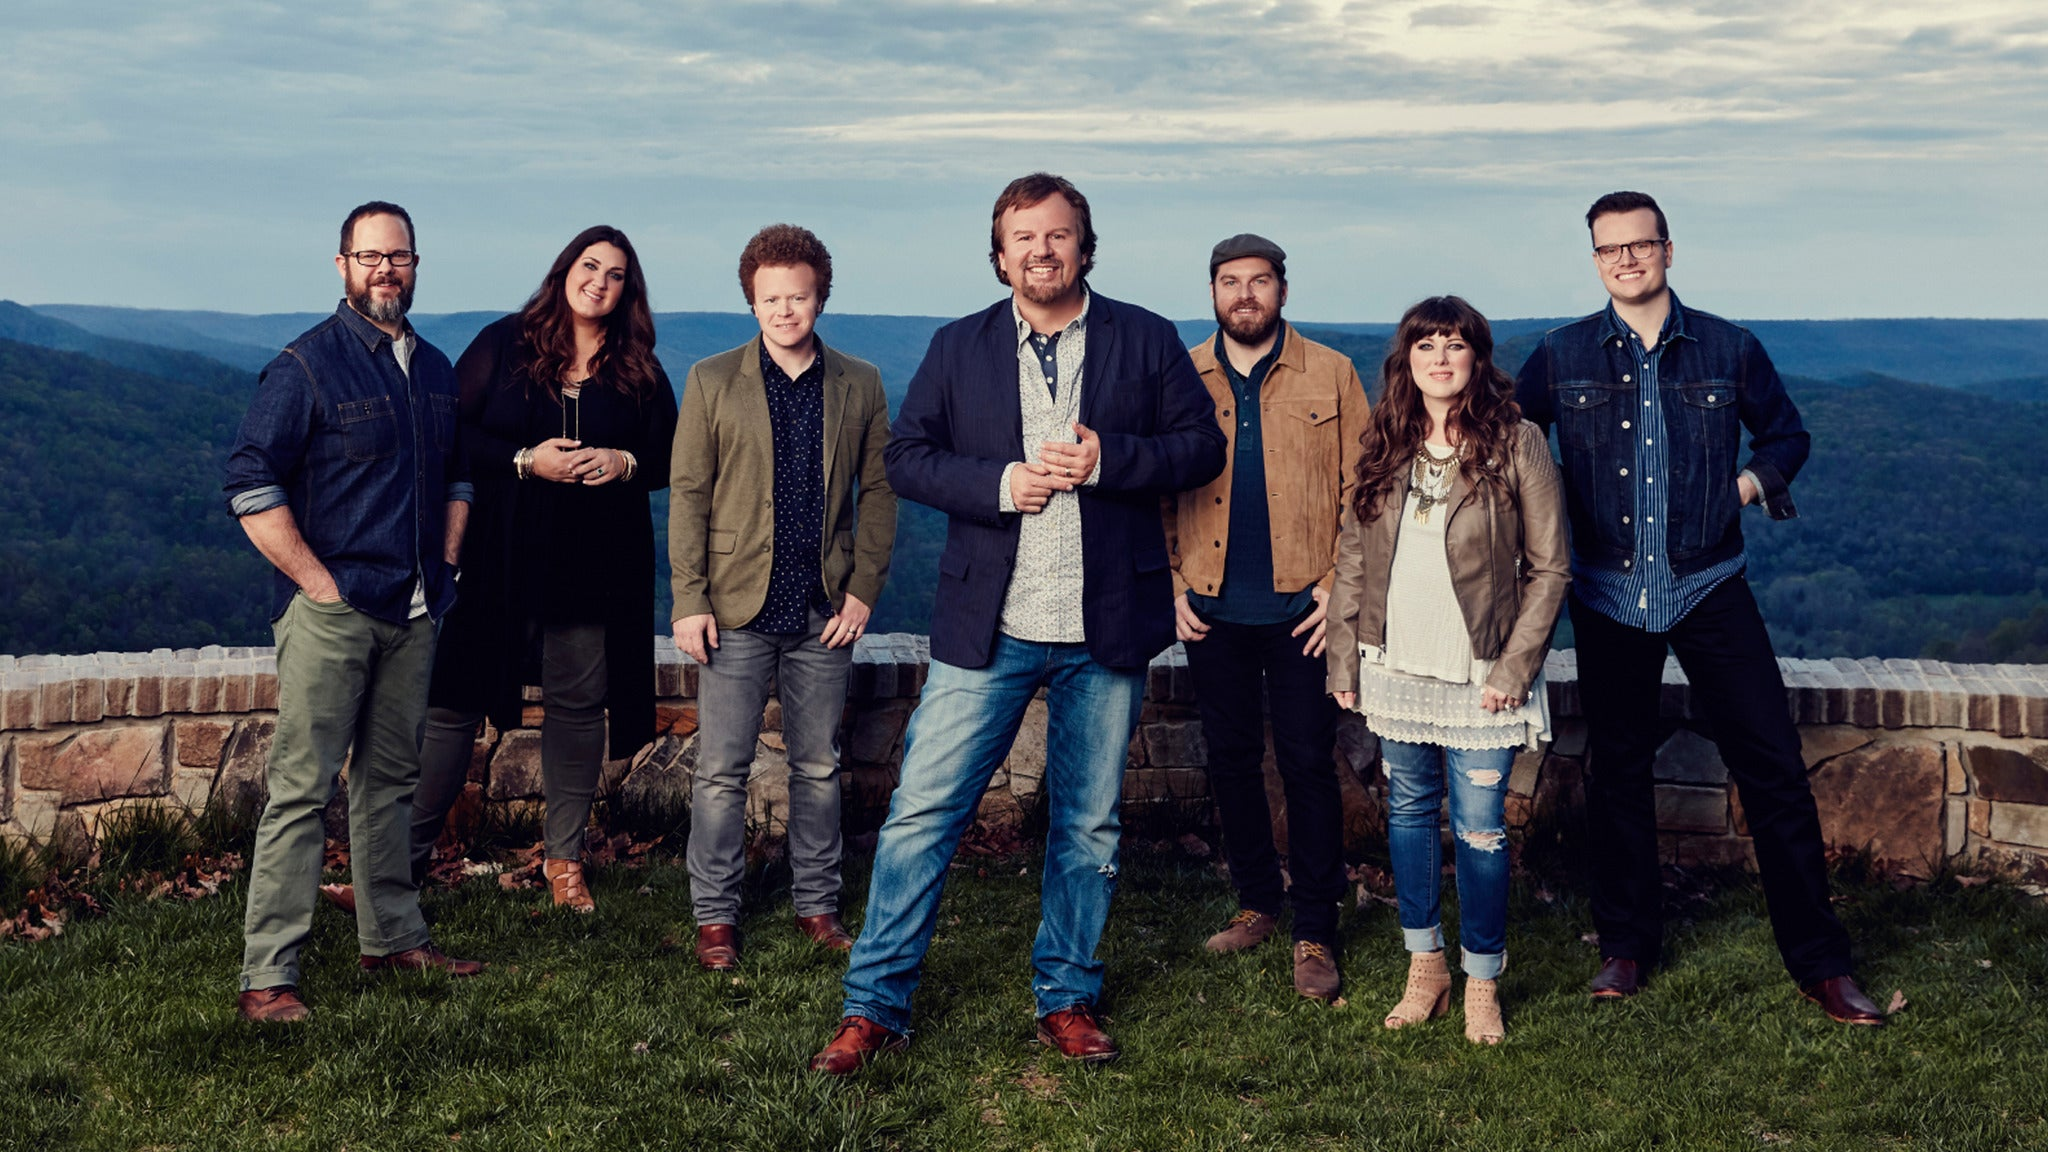 Casting Crowns: The Very Next Thing Tour at Germain Arena